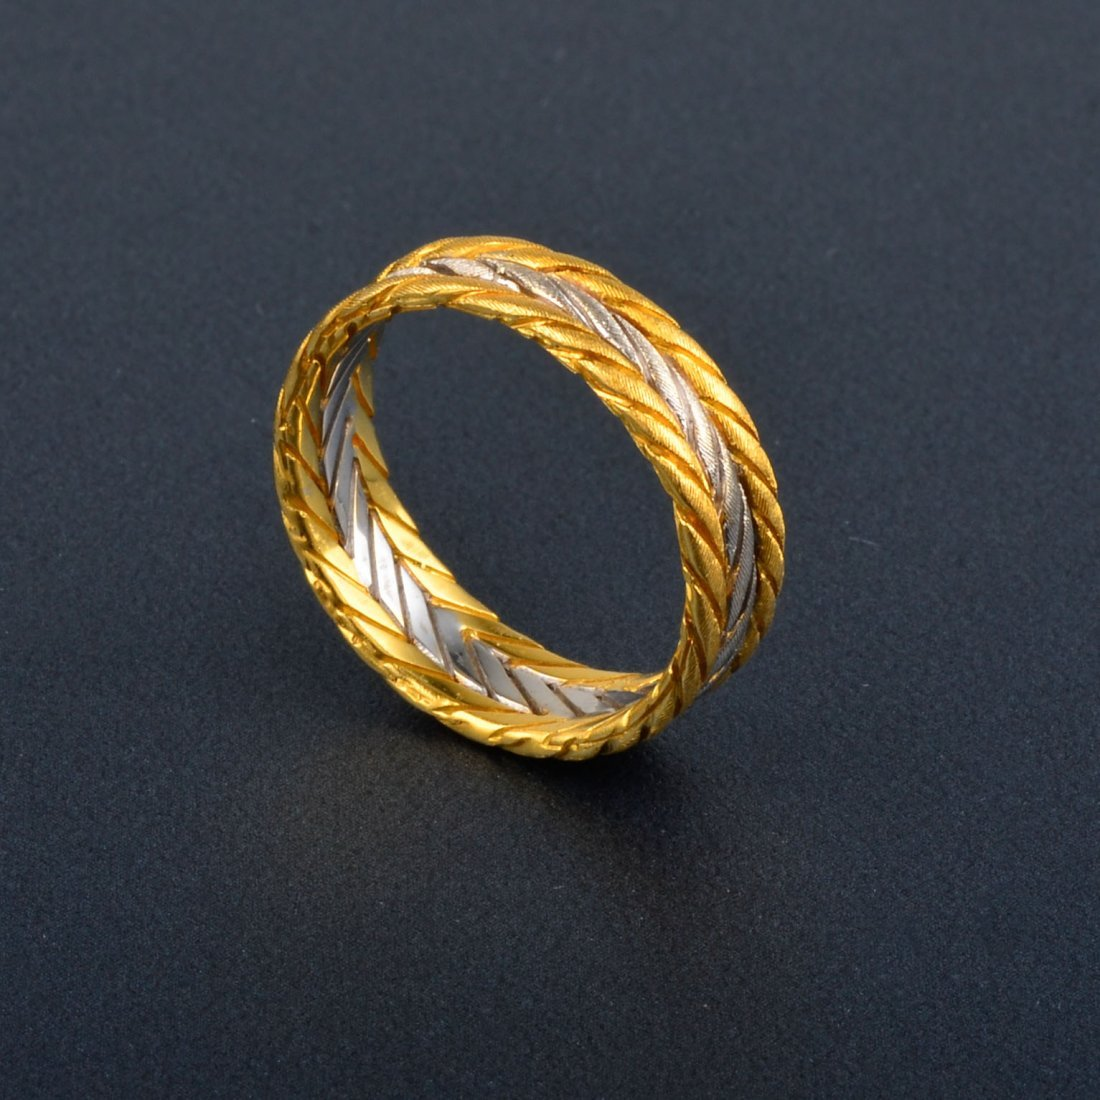 11: Buccellati 2-tone Gold Band